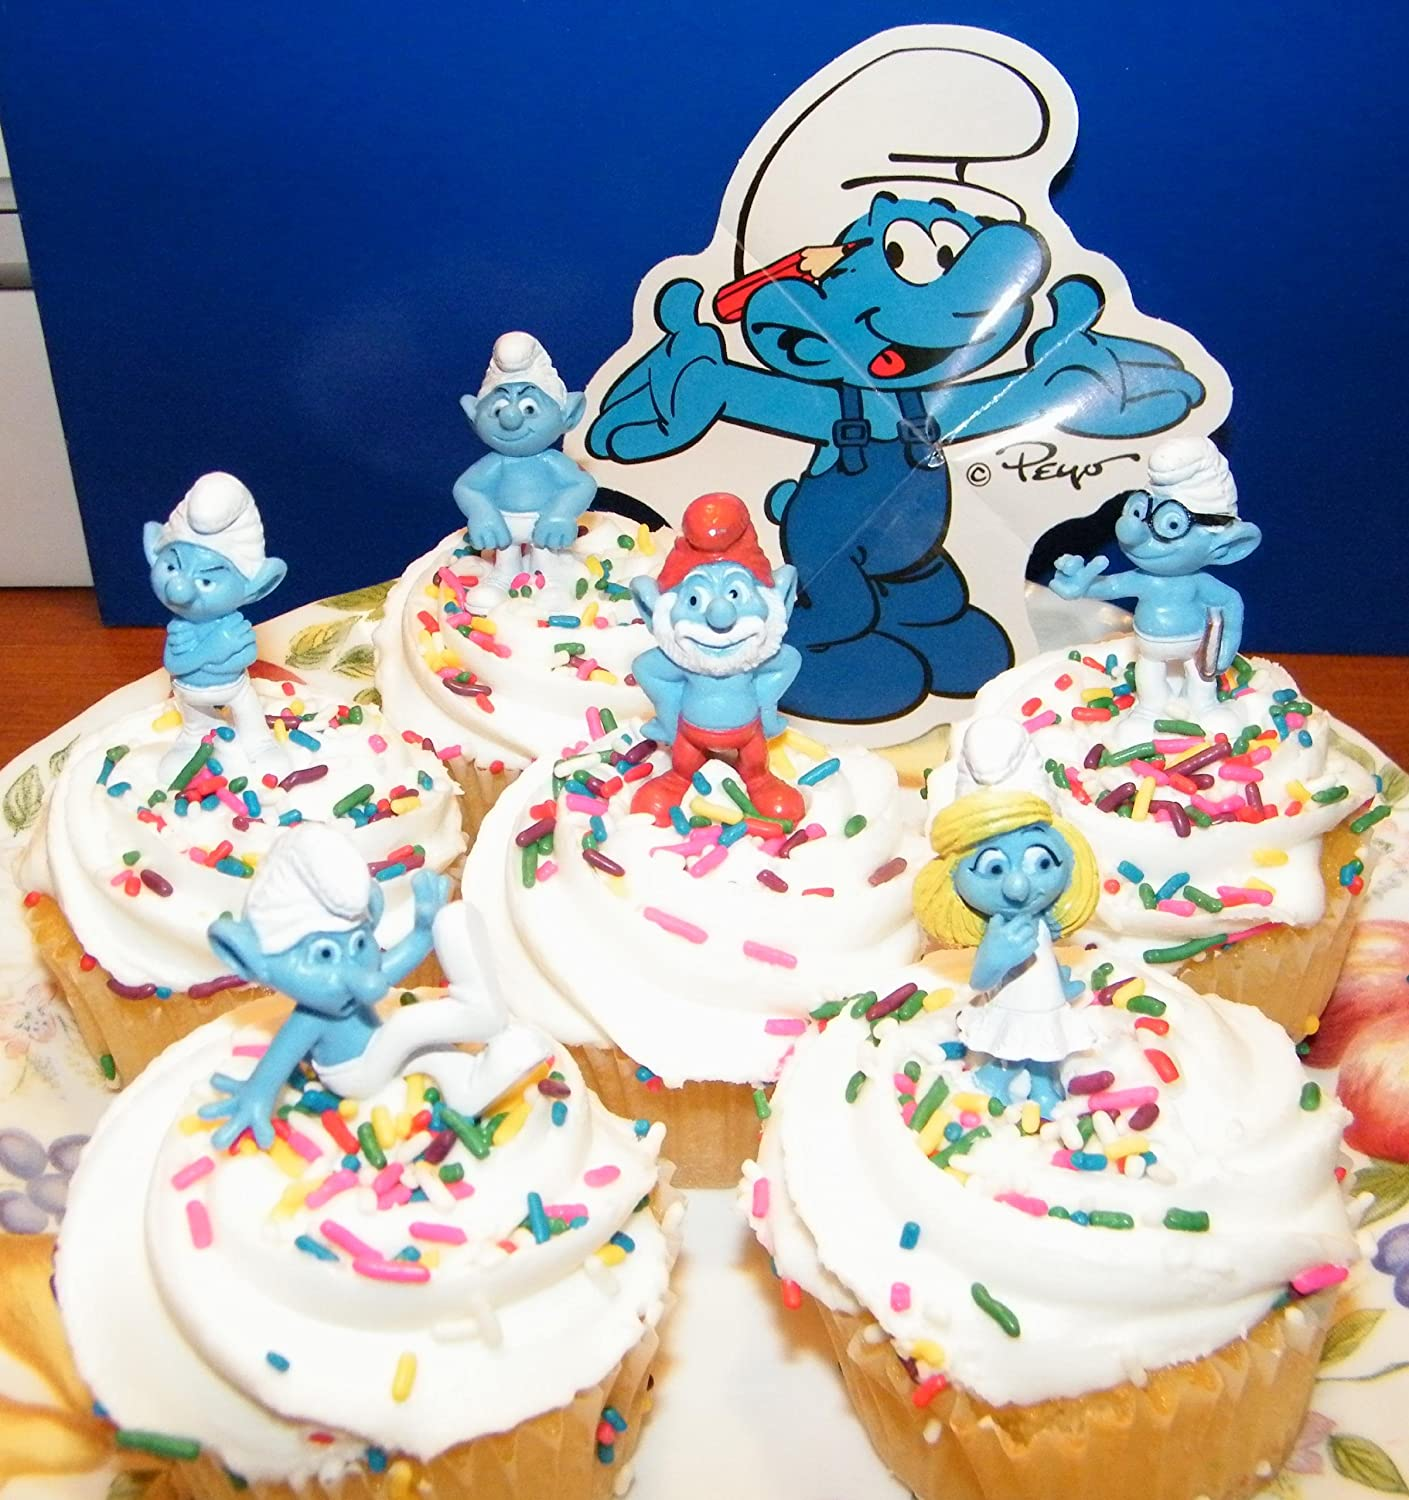 Amazon Smurf Cake Toppers Cup Cake Decoration Figures by AA